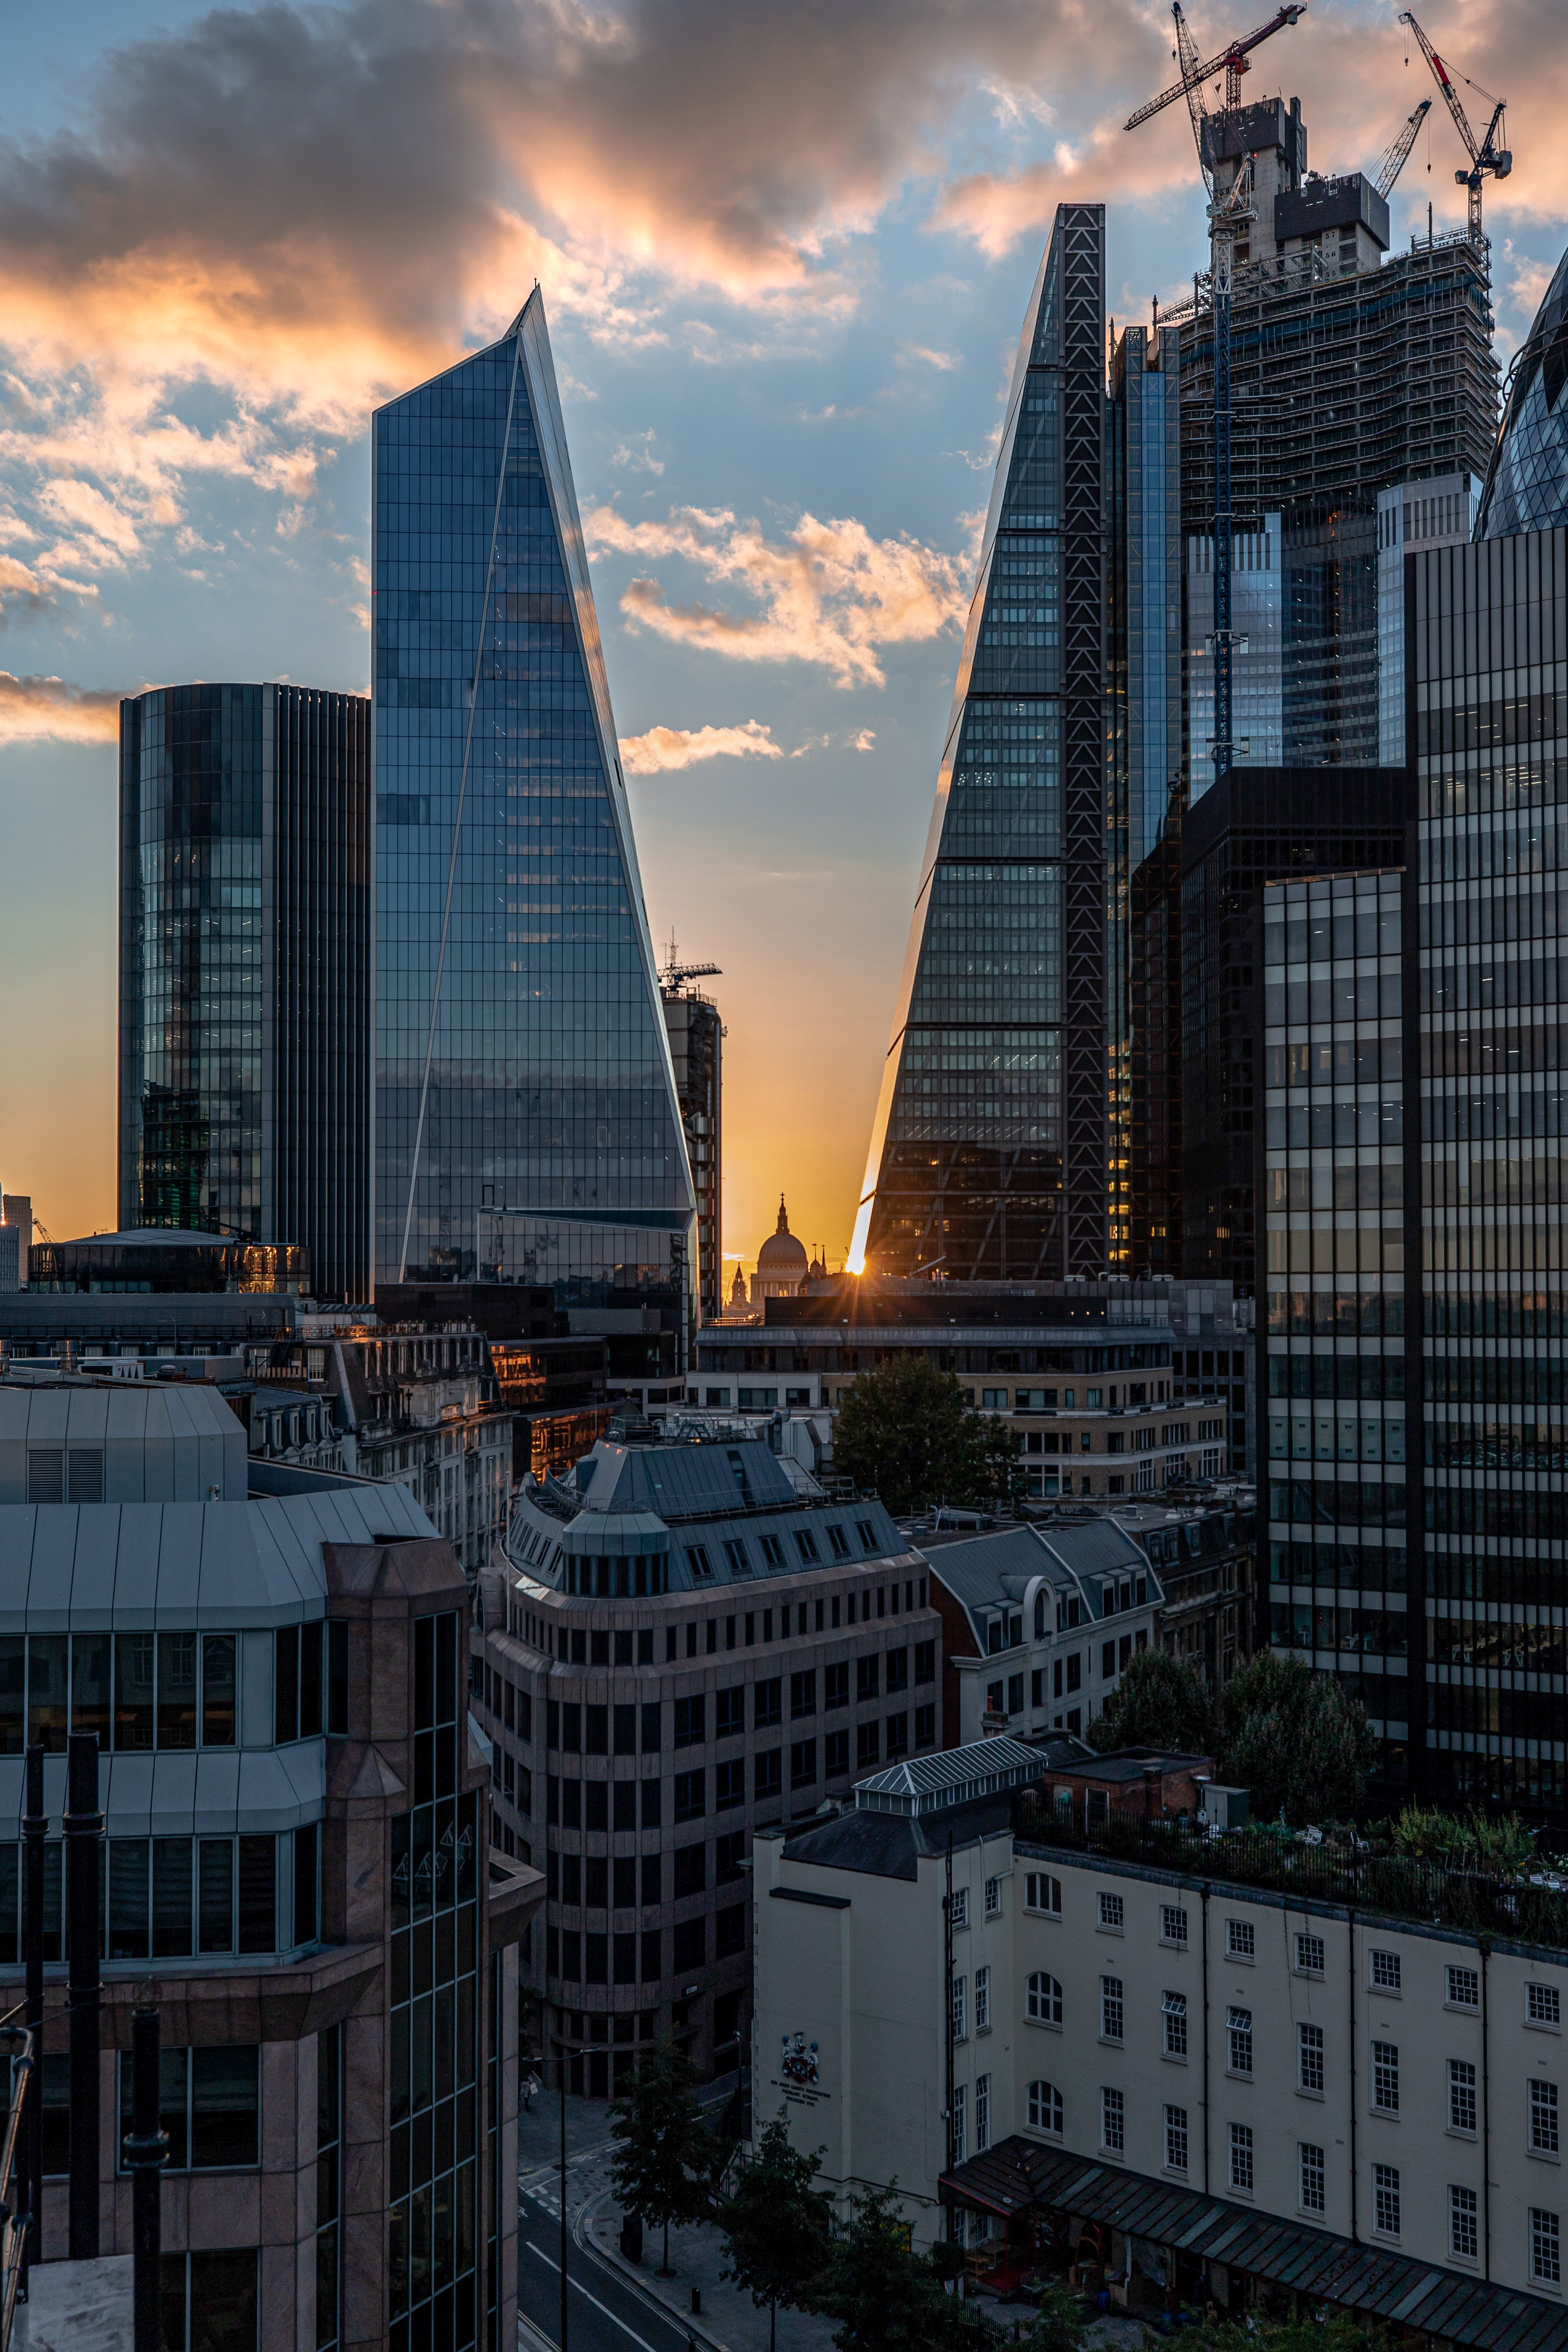 149377 Screensavers and Wallpapers London for phone. Download Cities, Architecture, London, City, Building, Skyscrapers pictures for free